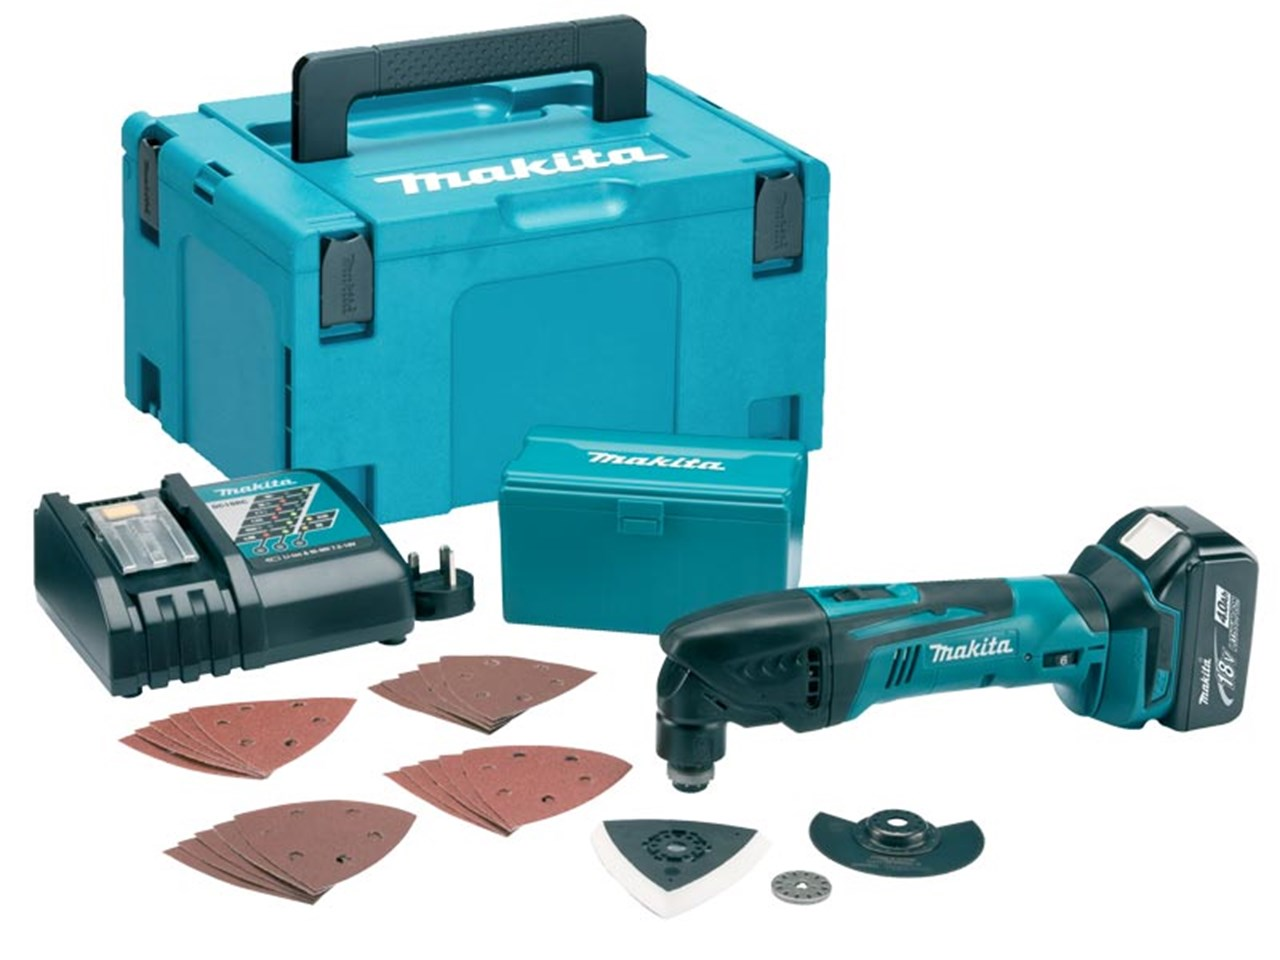 makita dtm50rm1j1 18v lxt multi tool 4 0ah with accessories makpac kit. Black Bedroom Furniture Sets. Home Design Ideas